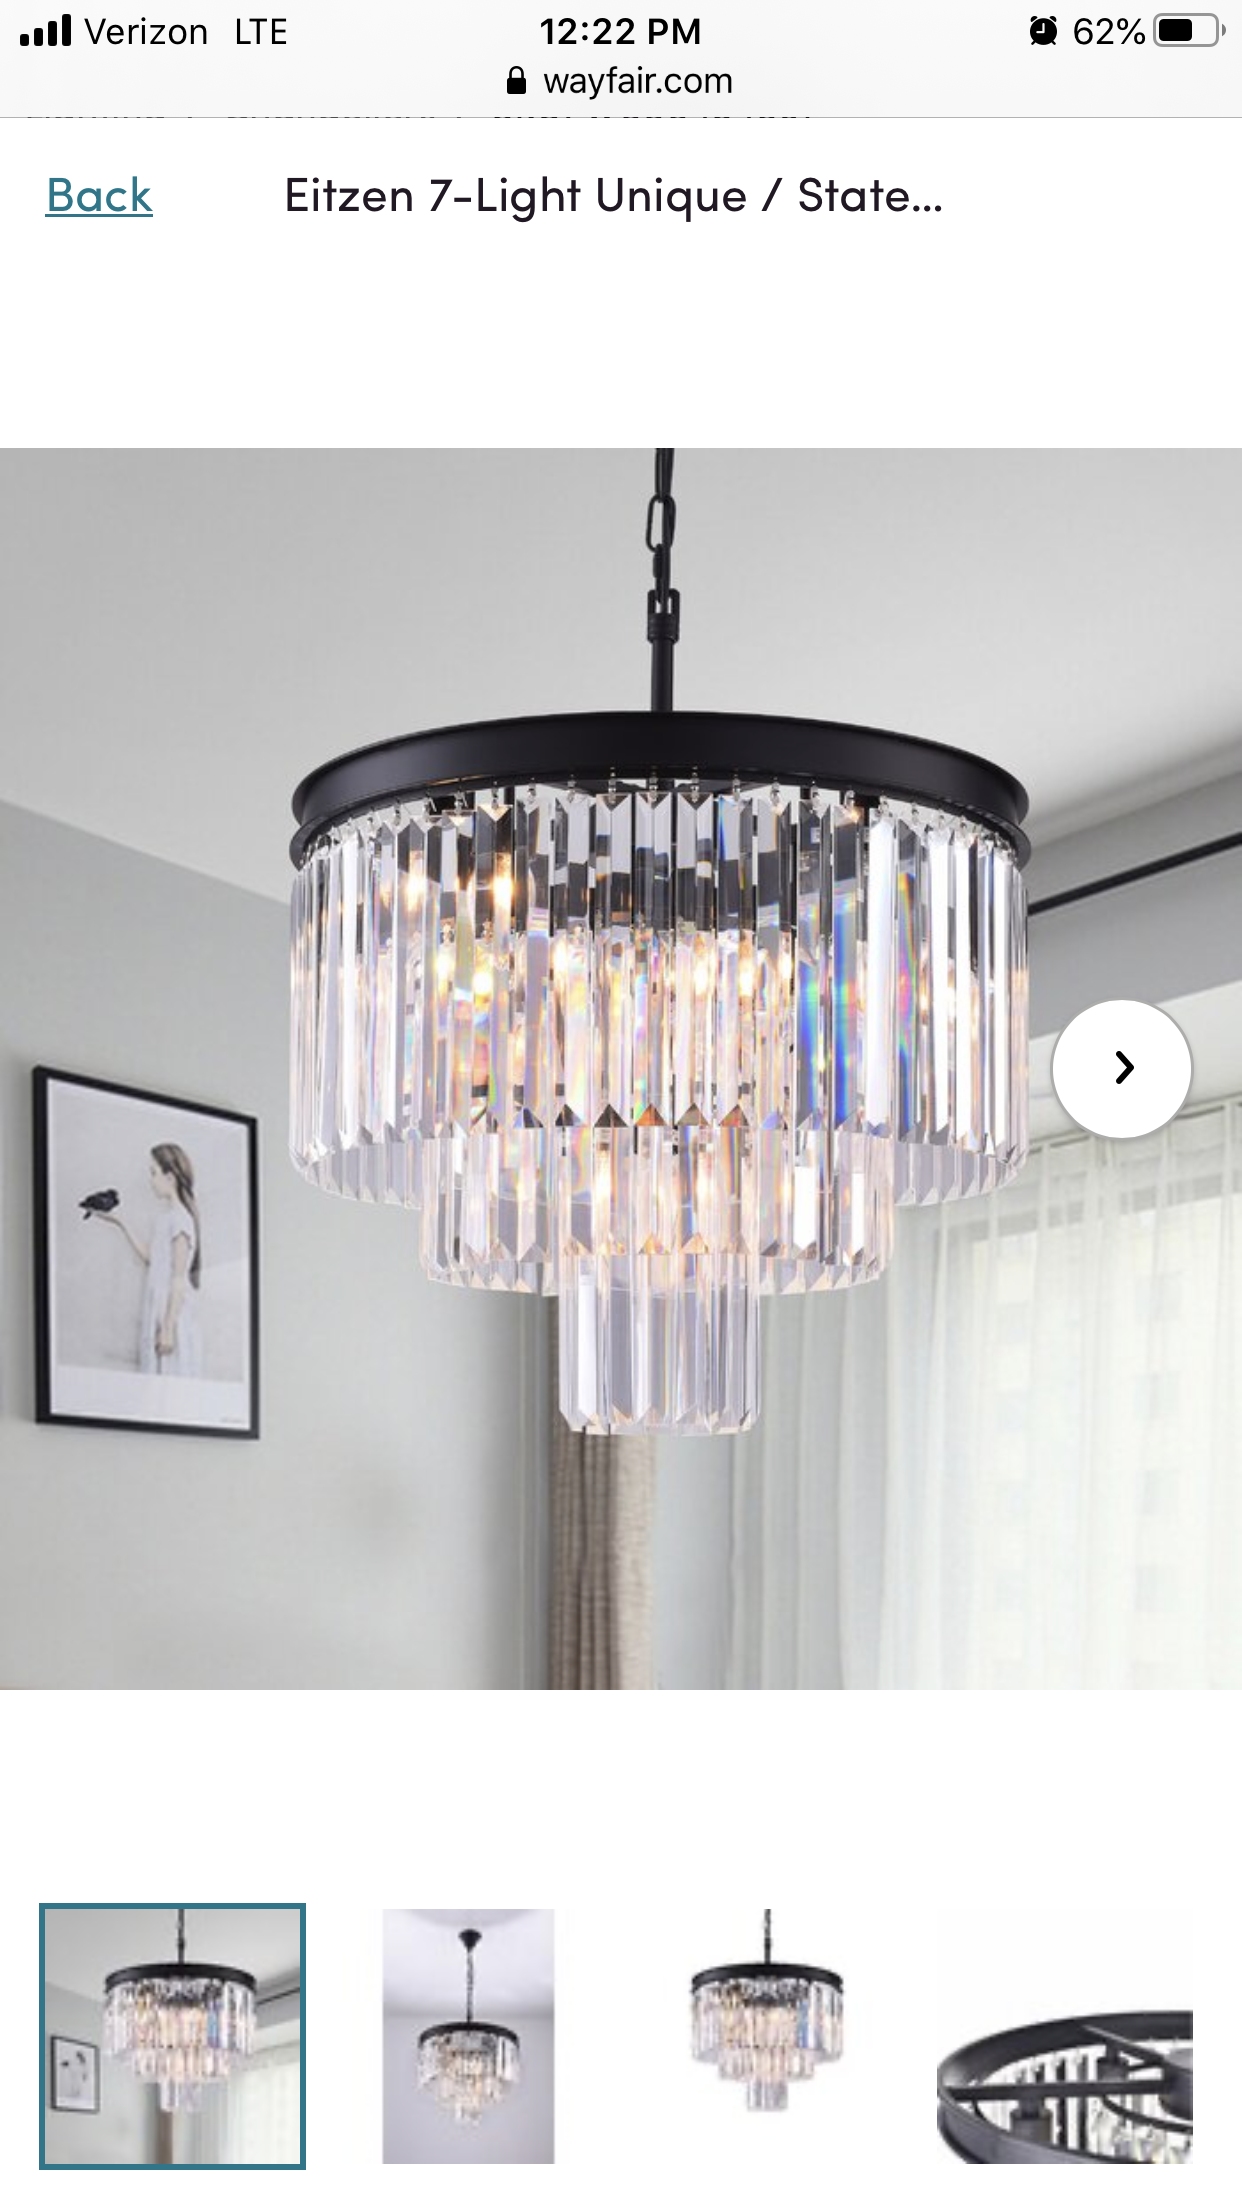 Eitzen 9 - Light Unique Tiered Chandelier in 9  Chandelier